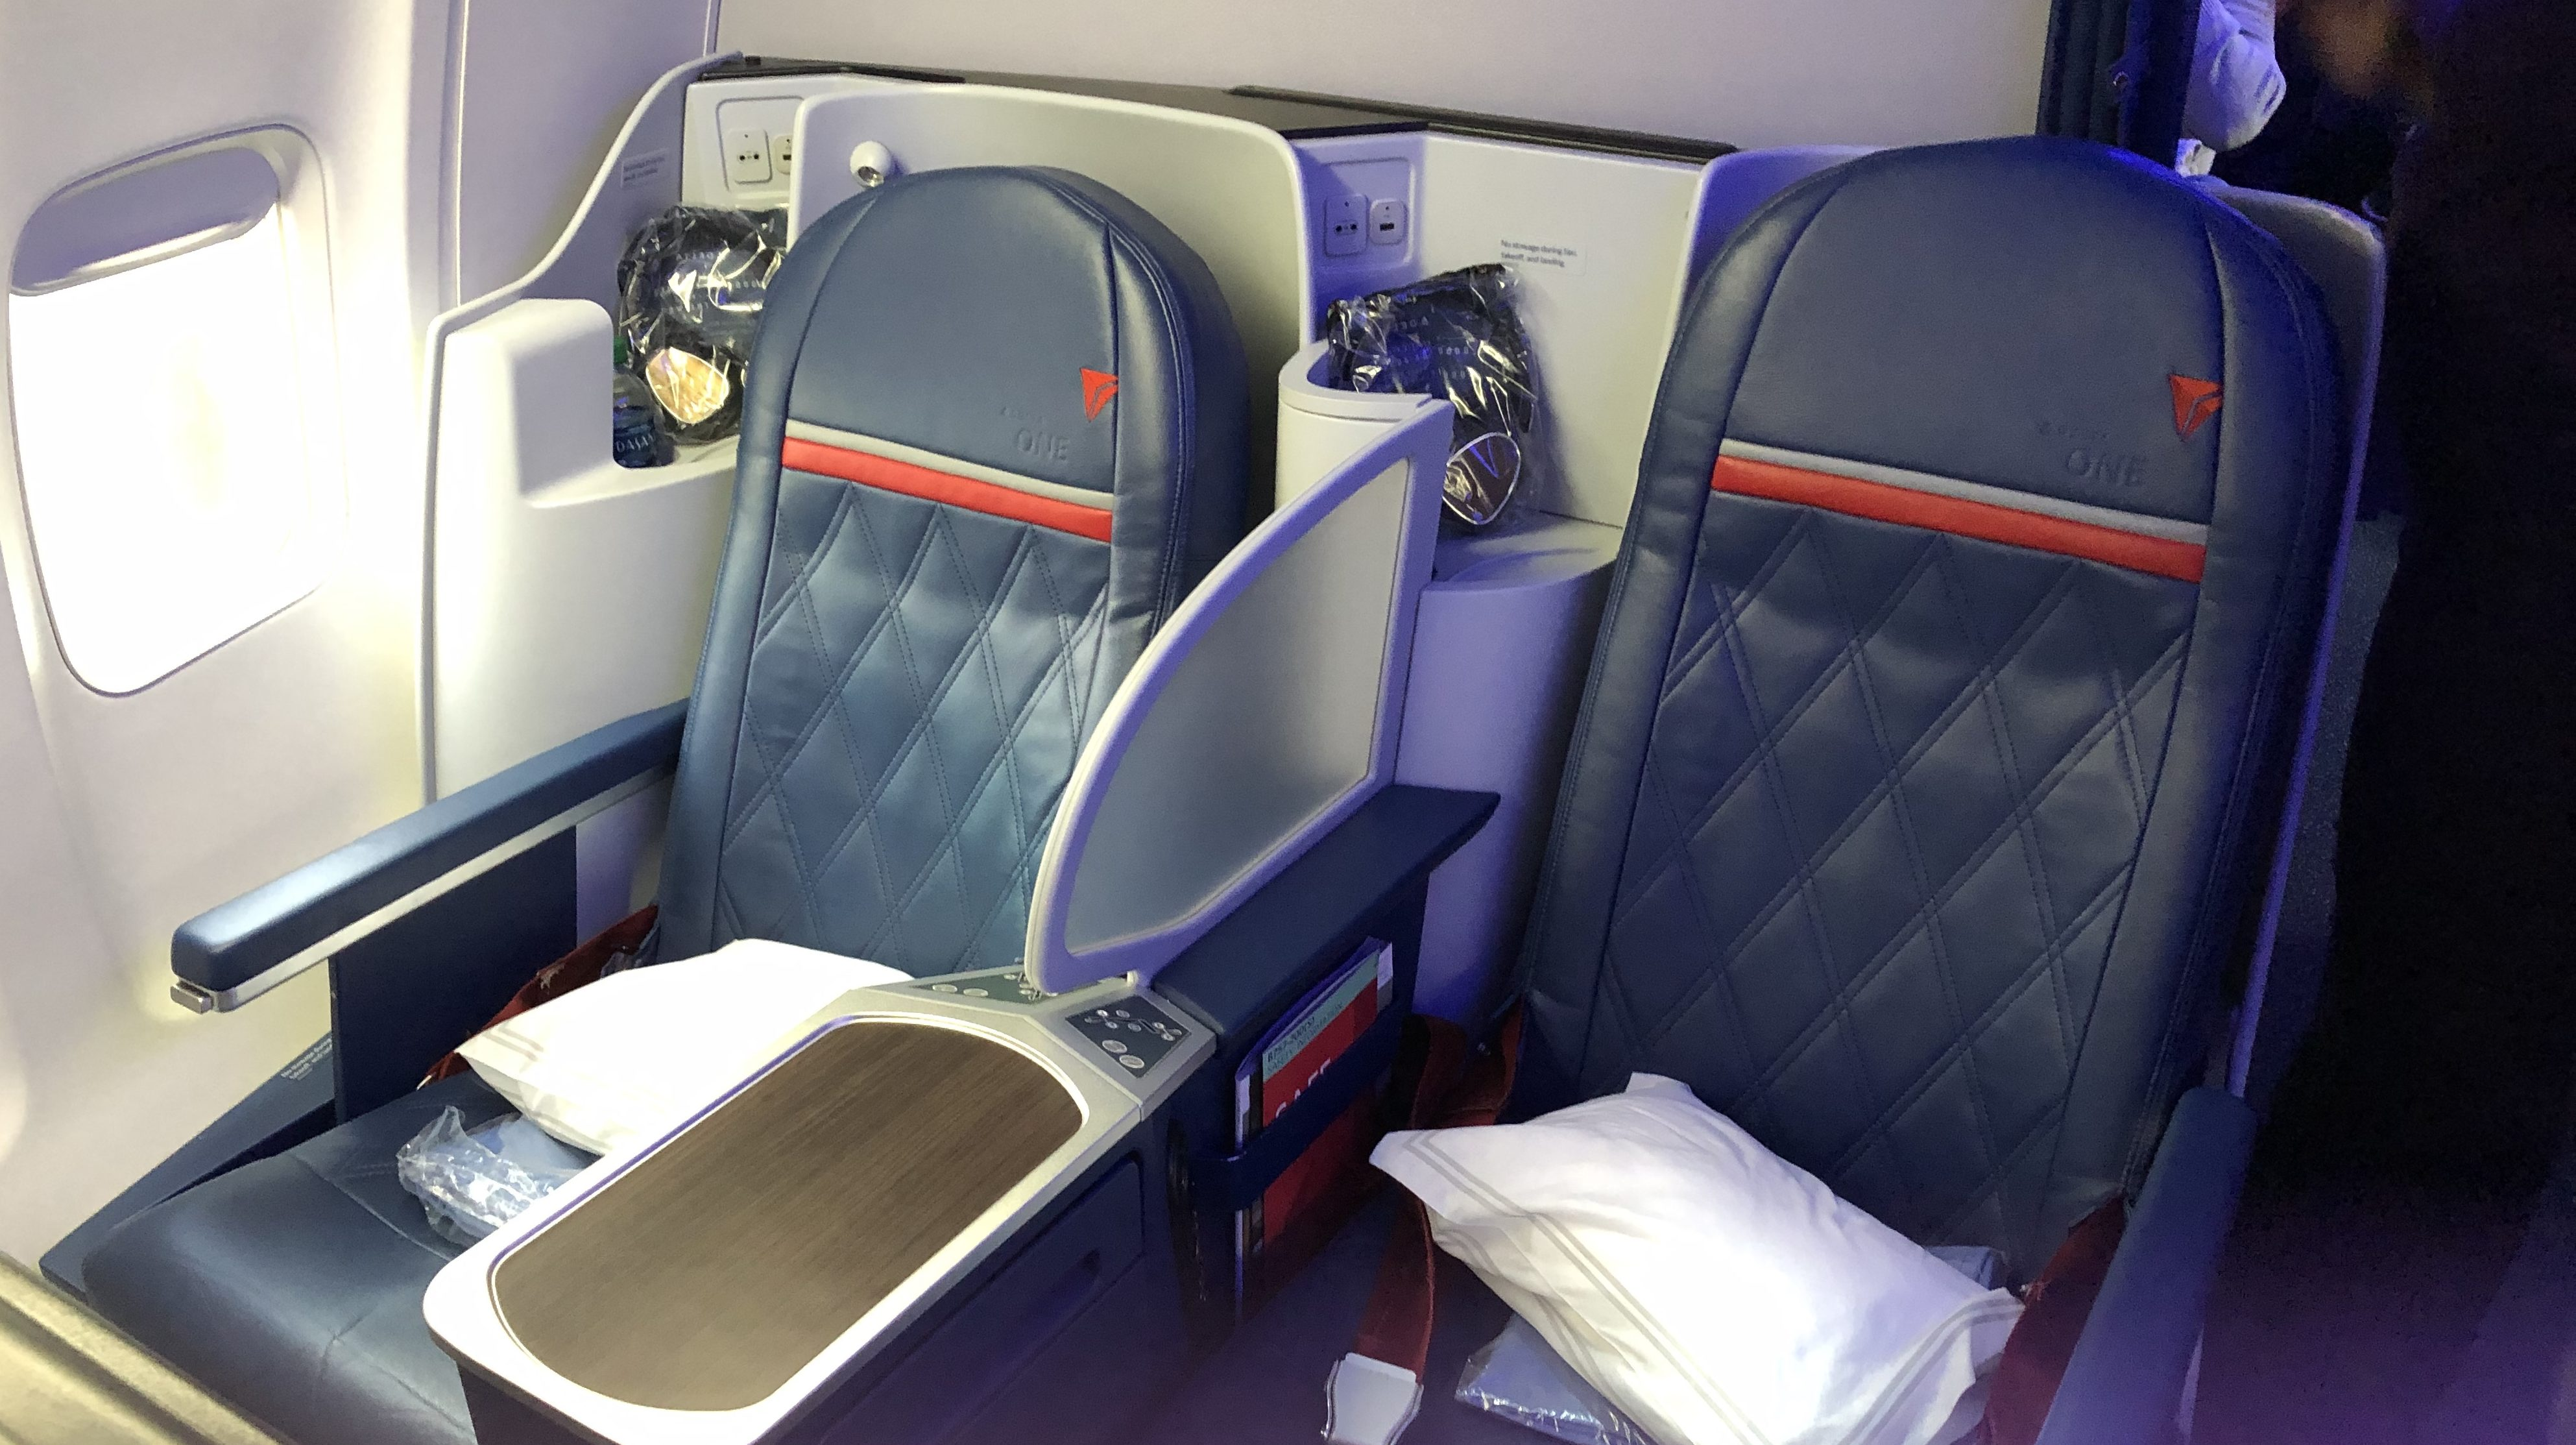 Is Delta One Better On The 757 Than The 767